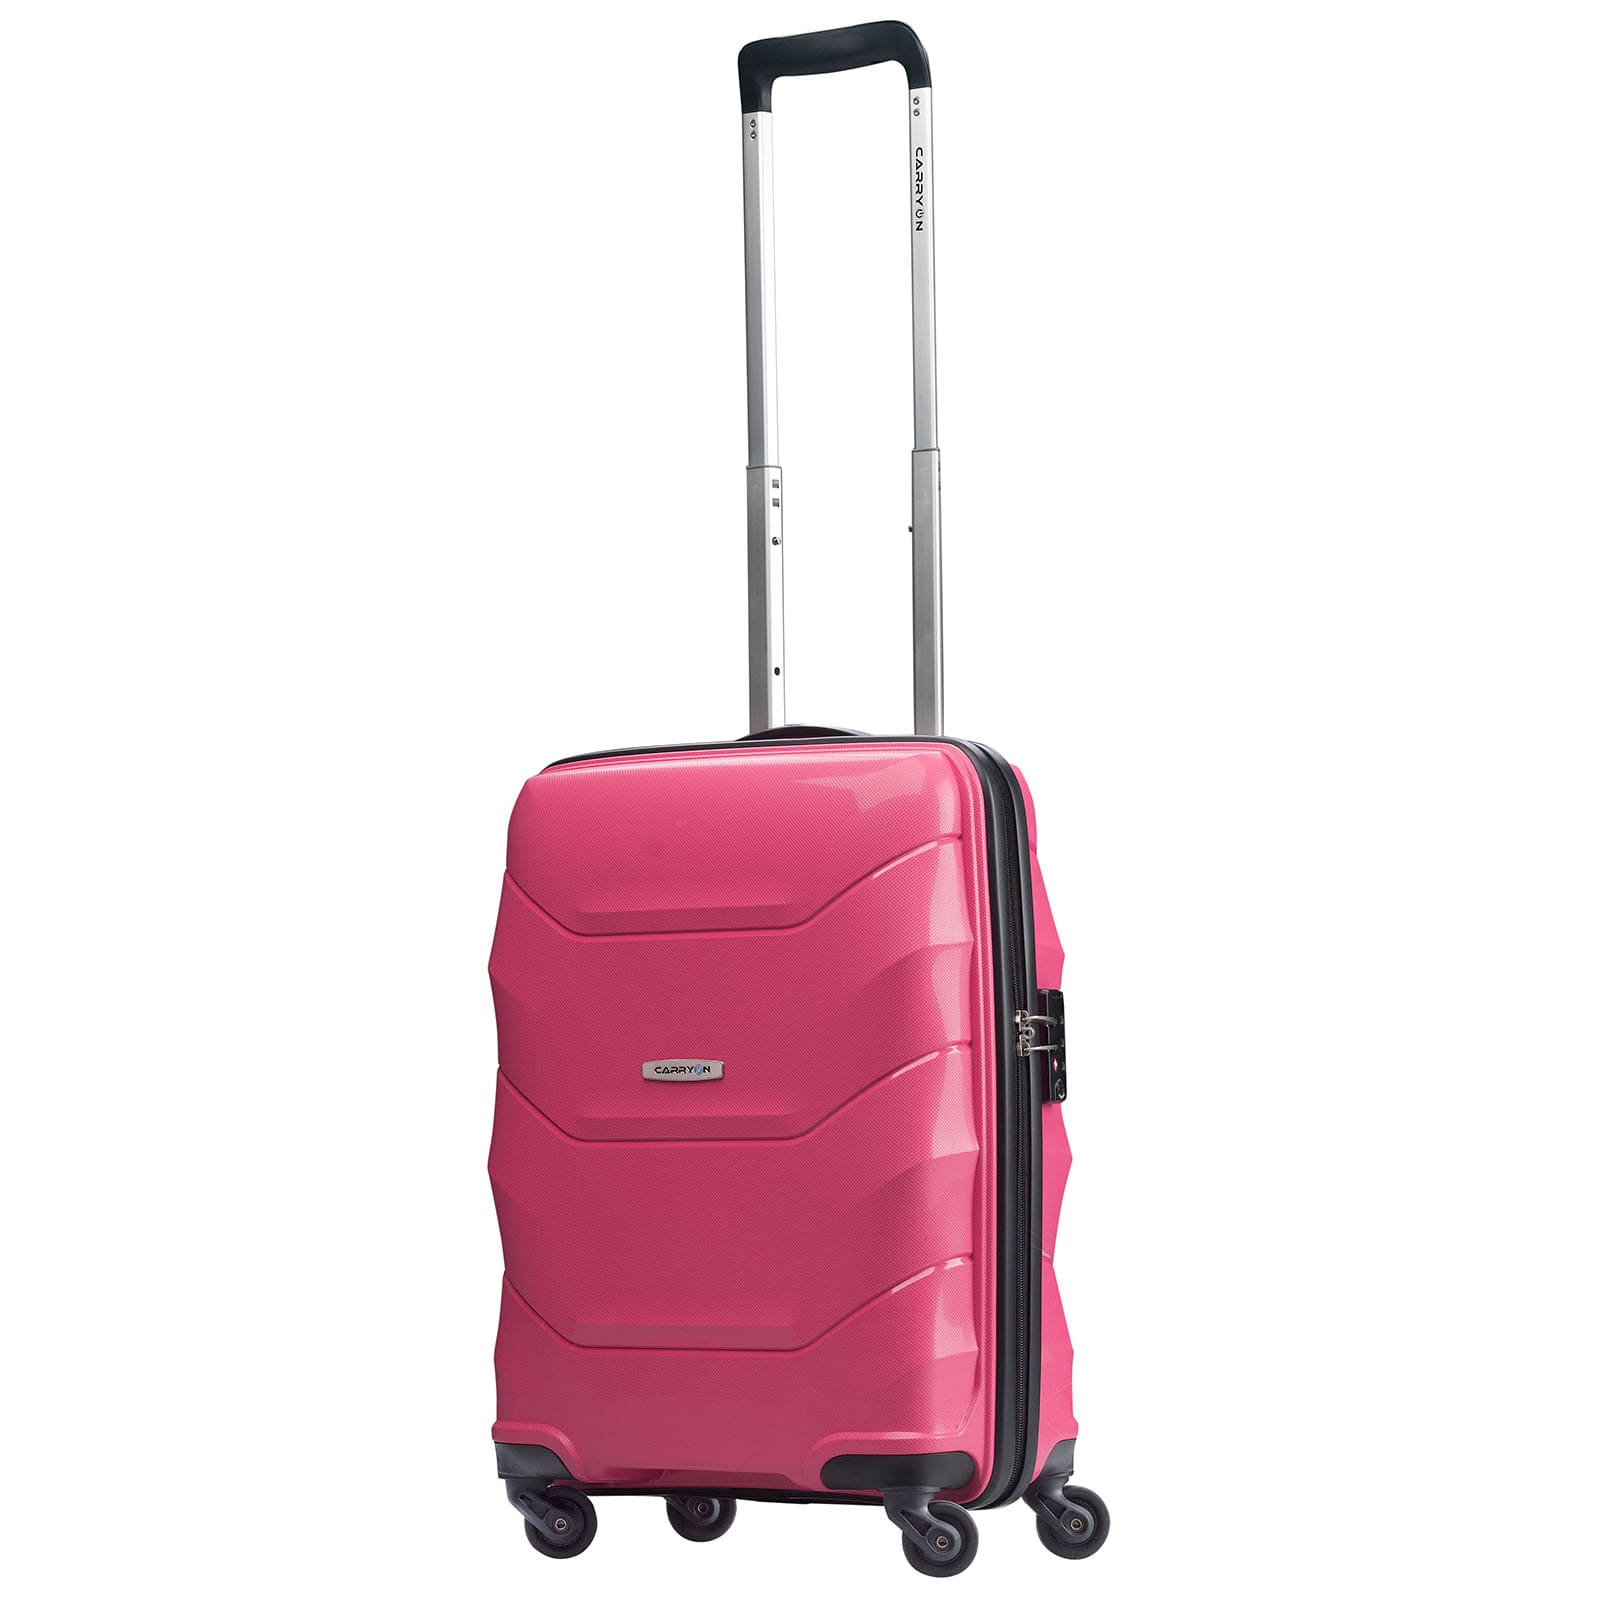 carryon porter 2 0 rosa 55cm handgep ck trolley koffer. Black Bedroom Furniture Sets. Home Design Ideas